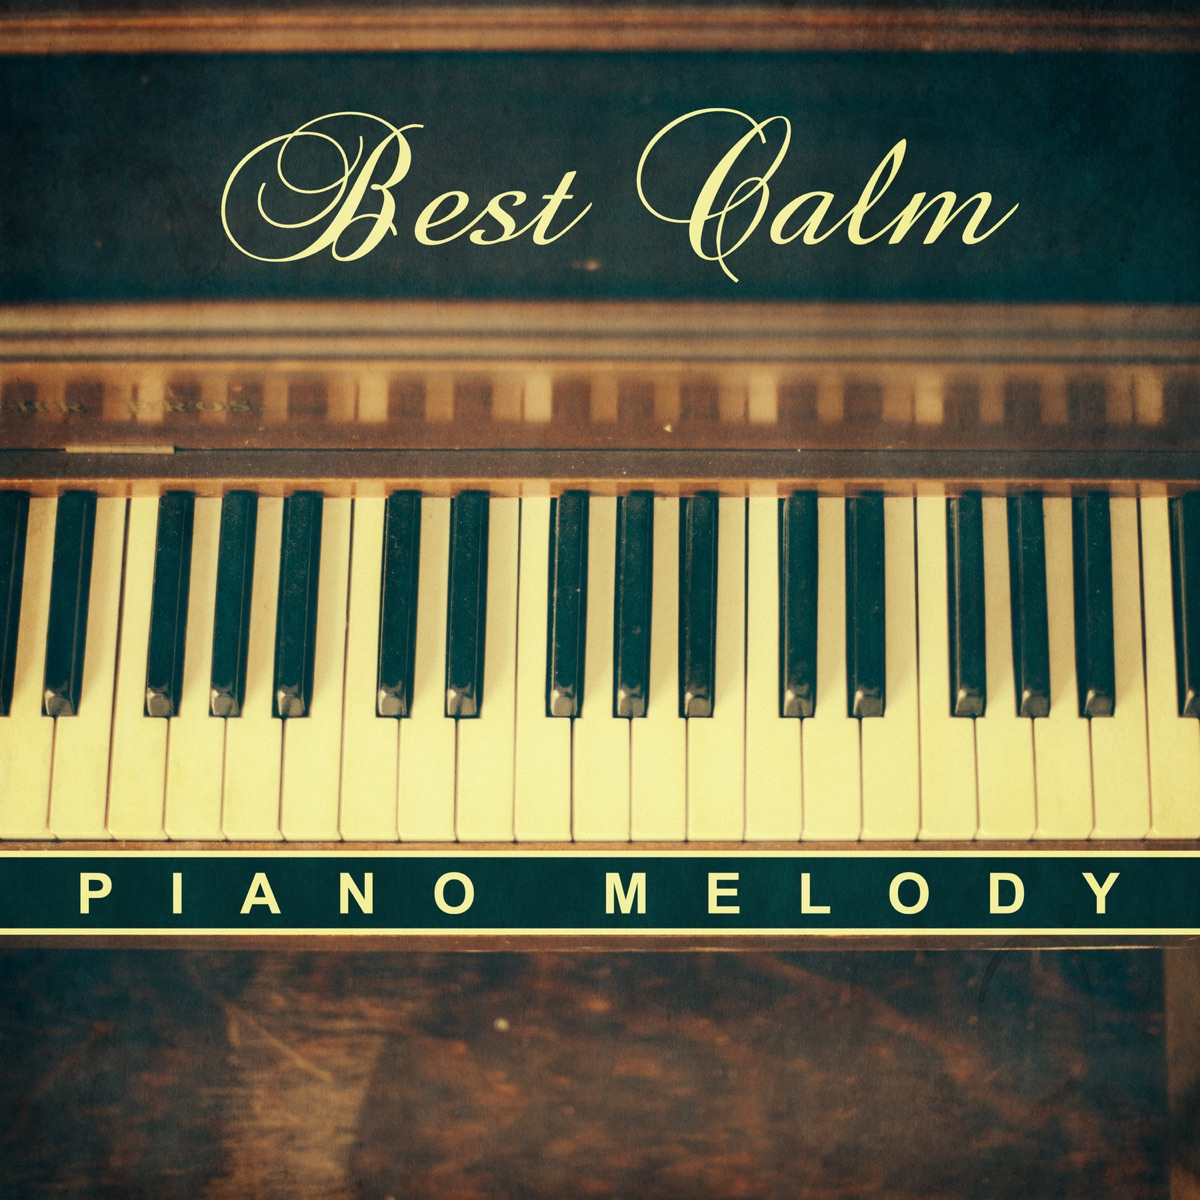 Best Calm Piano Melody: Smooth Piano Bar Background